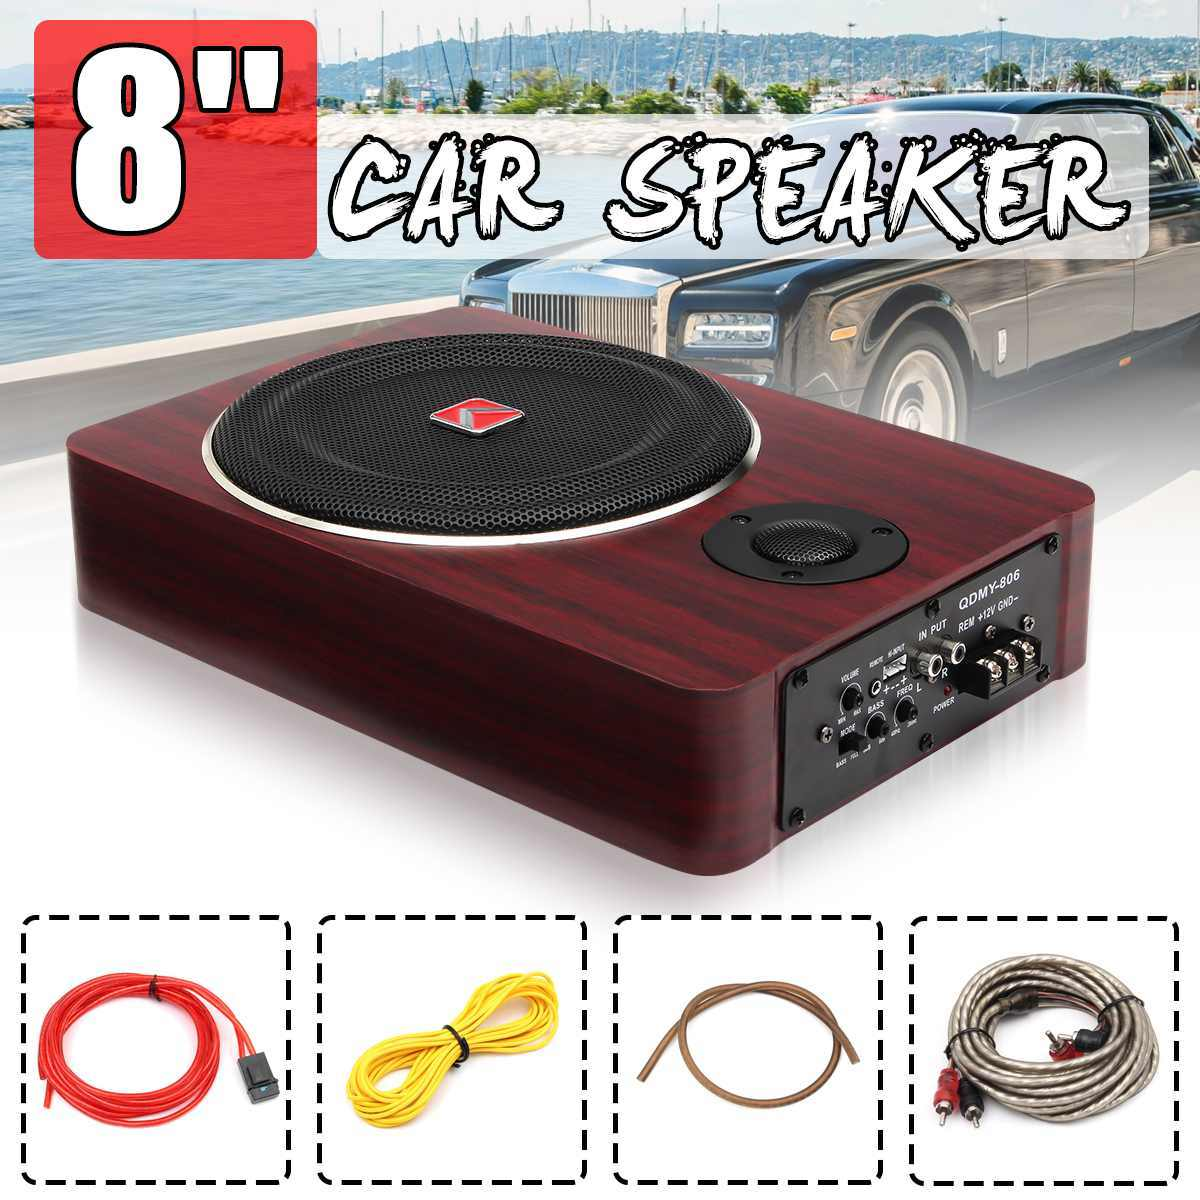 600W 8 Inch Wooden Ultra-thin Car Stereo Subwoofer Car Audio Car Speaker Universal Speaker Subwoofer Auto Under Seat Enclosure